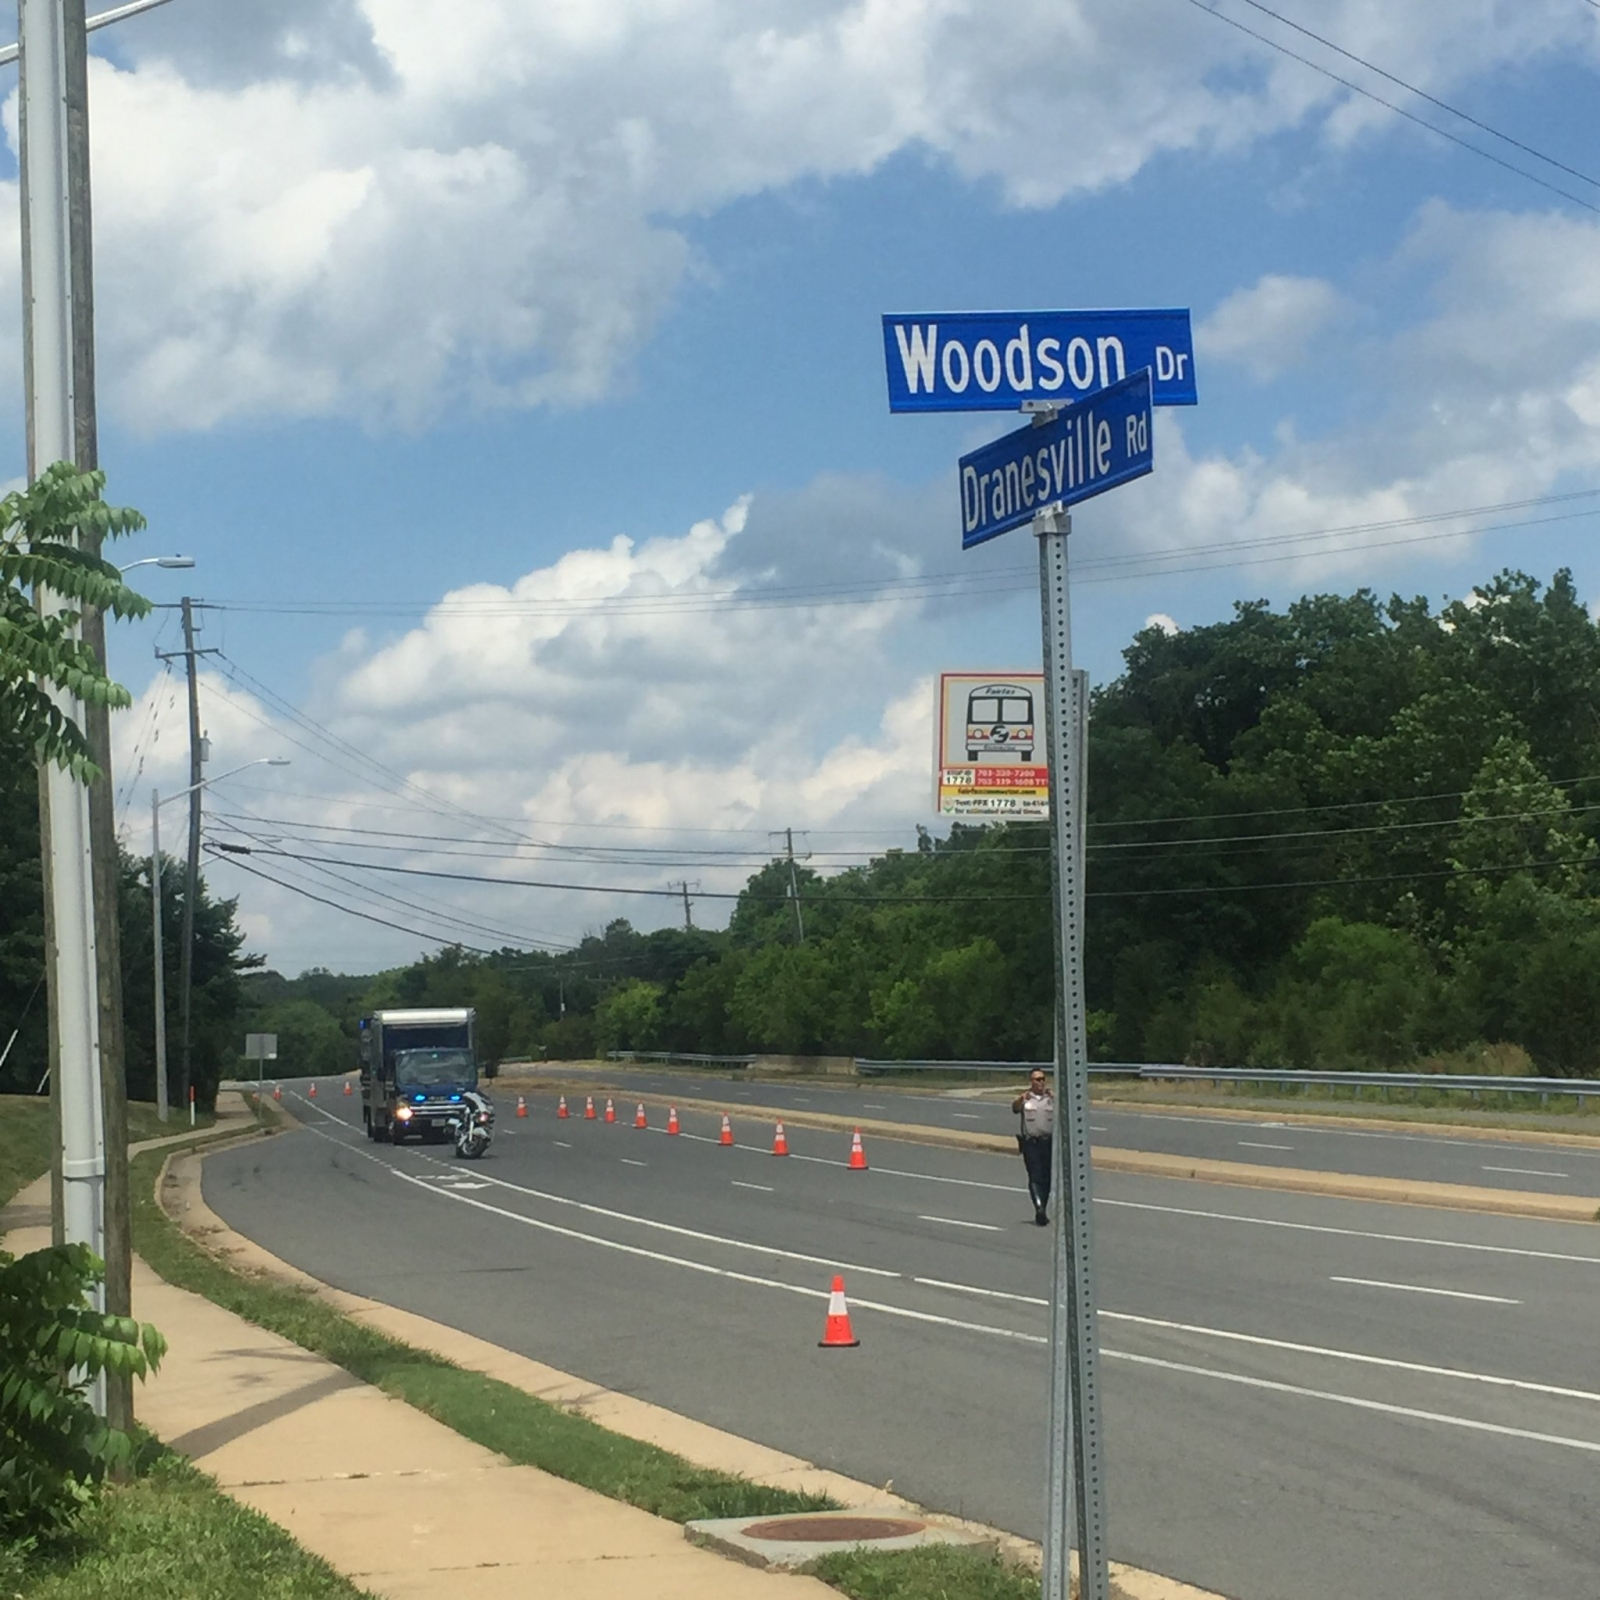 Streets where Virginia teen went missing